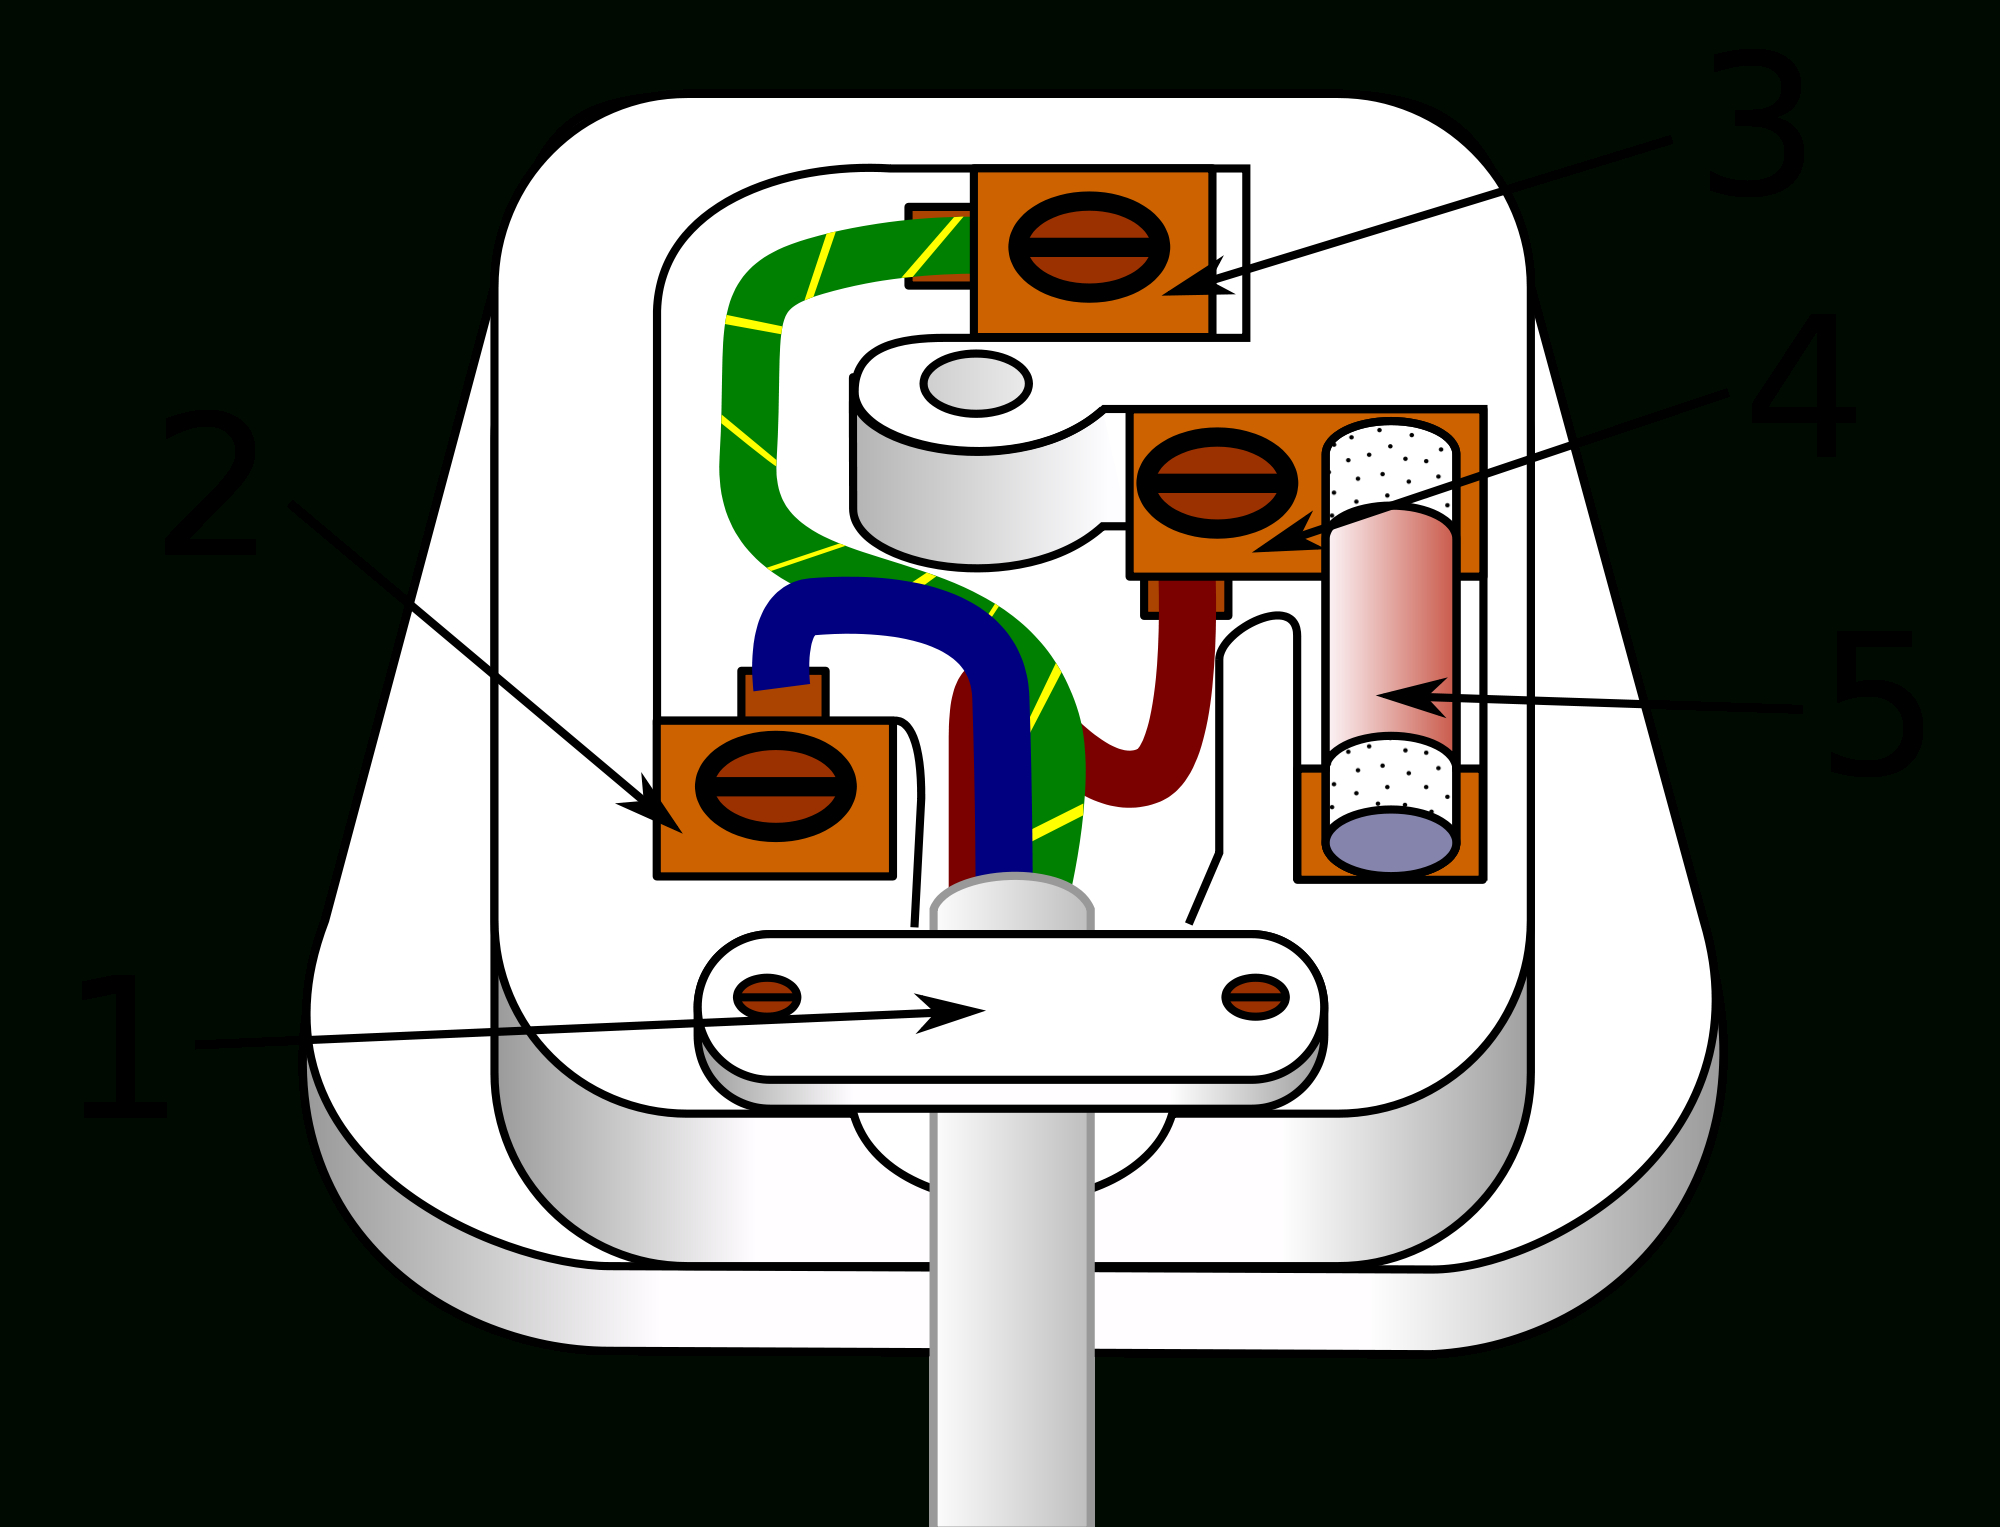 How To Wire A 3 Pin Plug - Mmk Electricians Dublin - Wiring A Plug Diagram